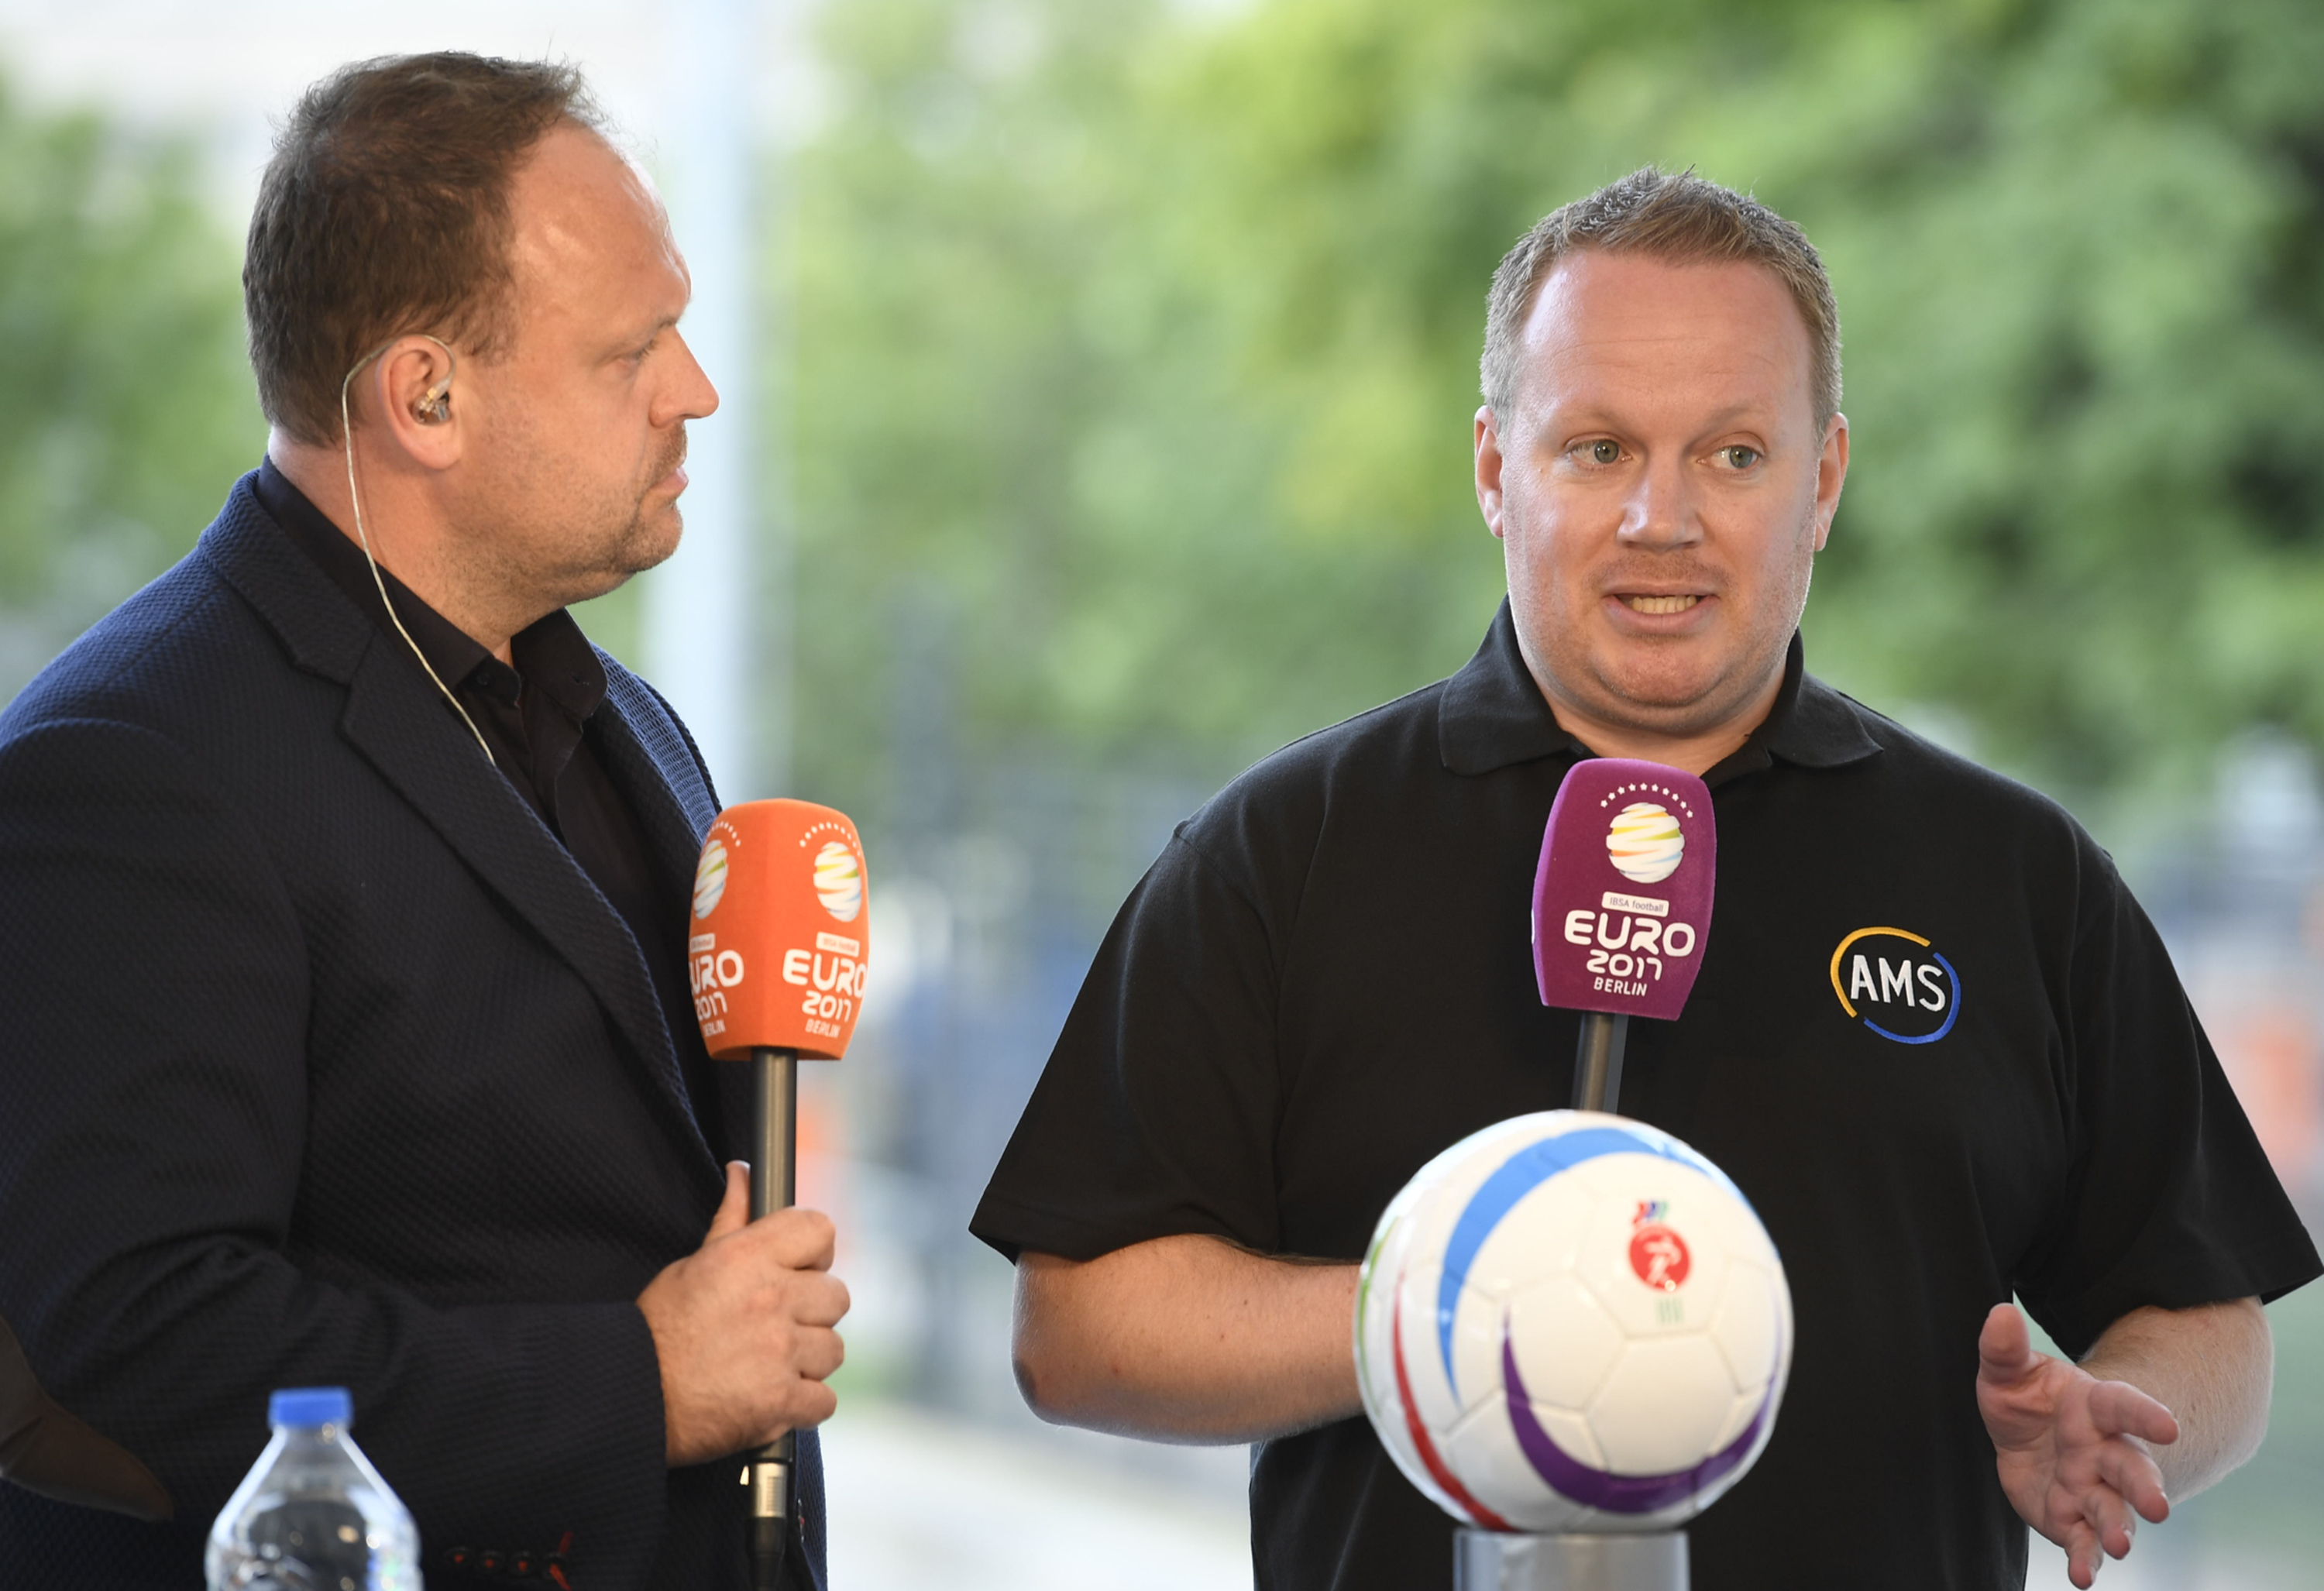 """Alan March (Left) was the host for the European Blind Football Championships 2017, Berlin, here interviewing LCFC Audio Describer, Pete Selby, who was the main commentator for the championships"""